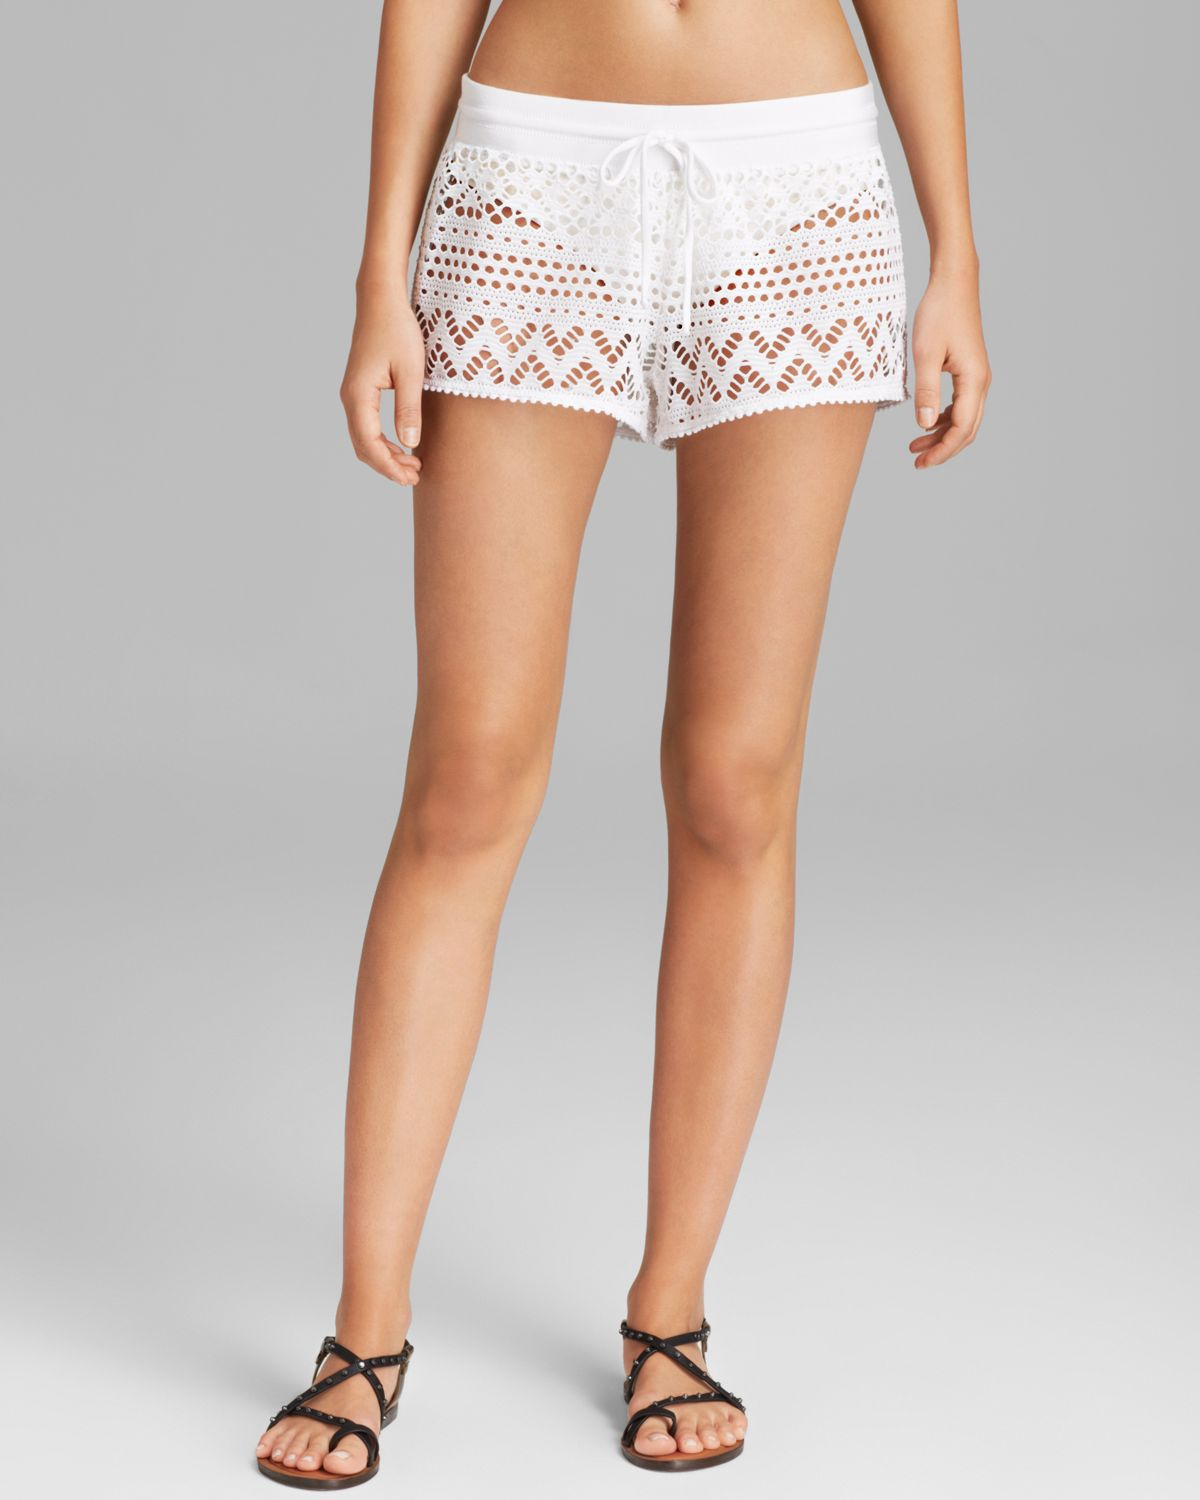 f2095f6da8 Gallery. Previously sold at: Bloomingdale's · Women's Robin Piccone Crochet